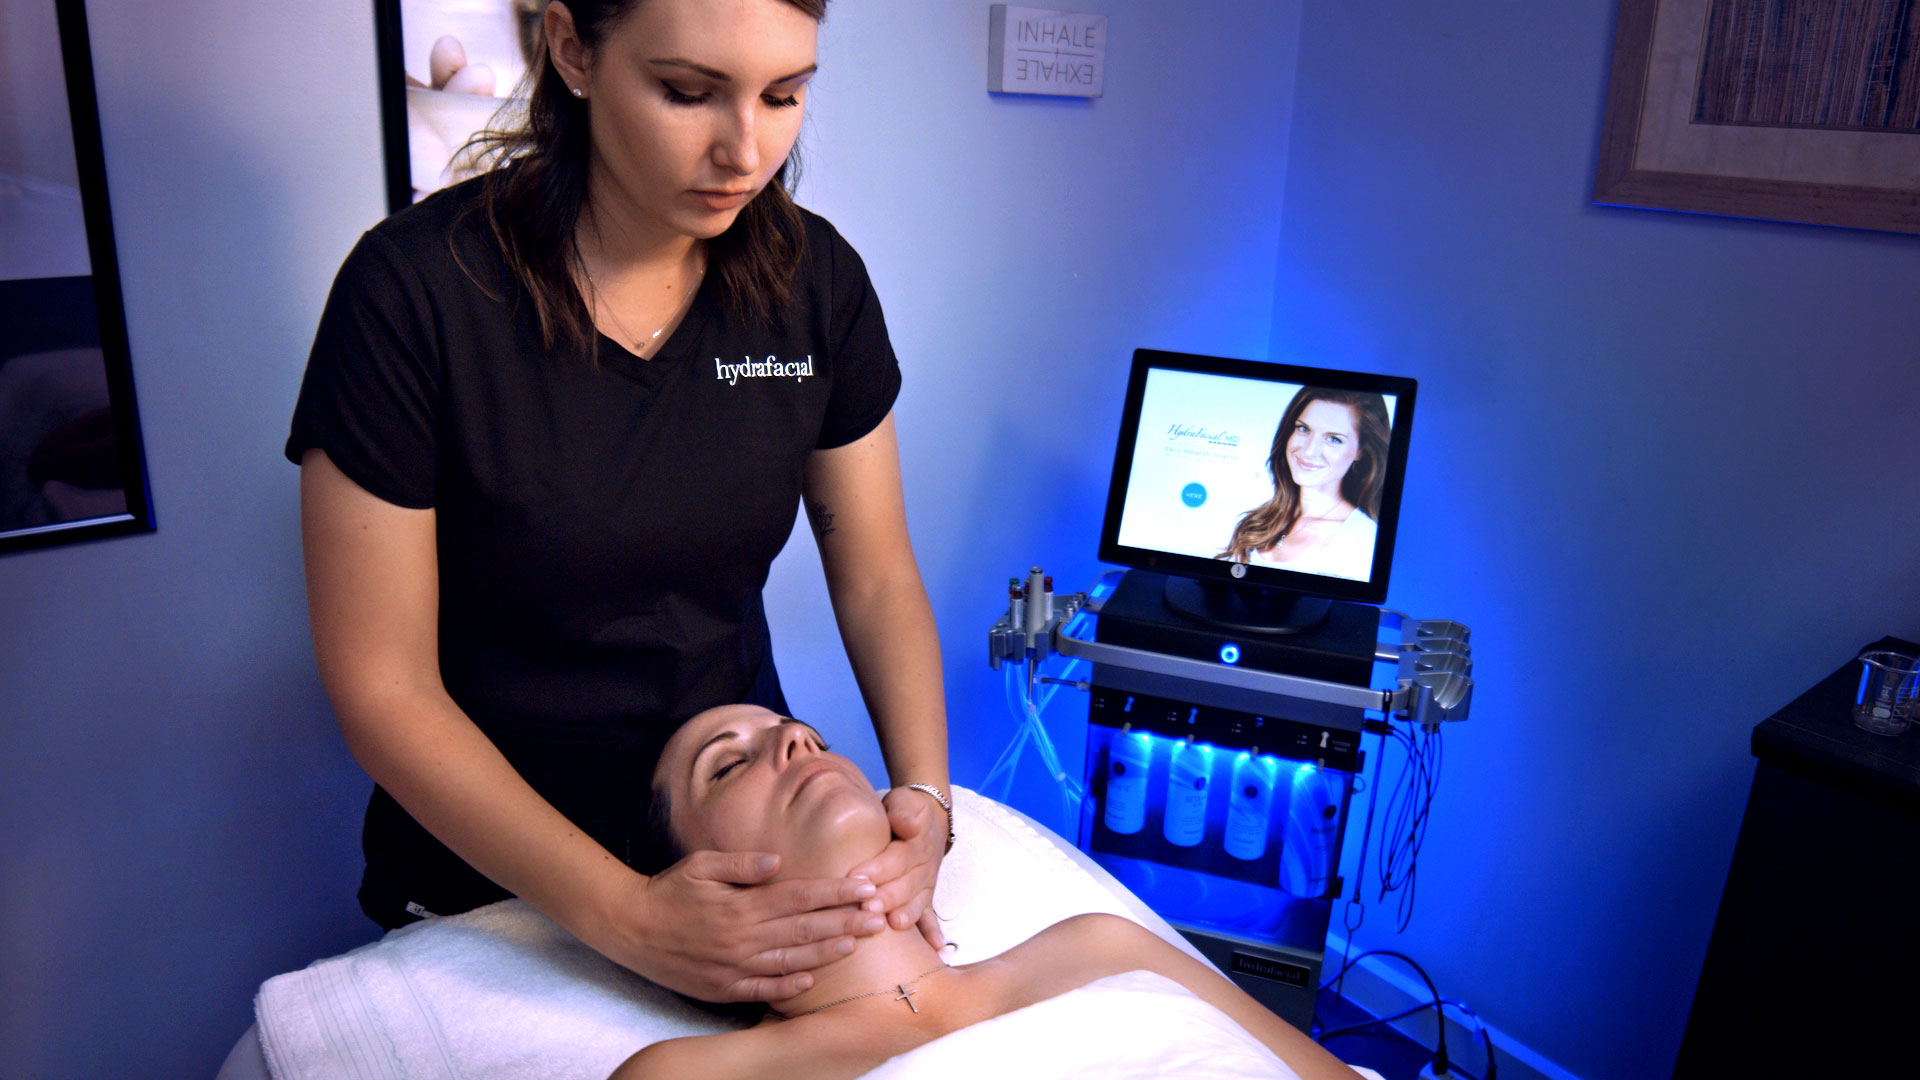 HydraFacial Treatment Photo. Photography Services by Redmonkie.